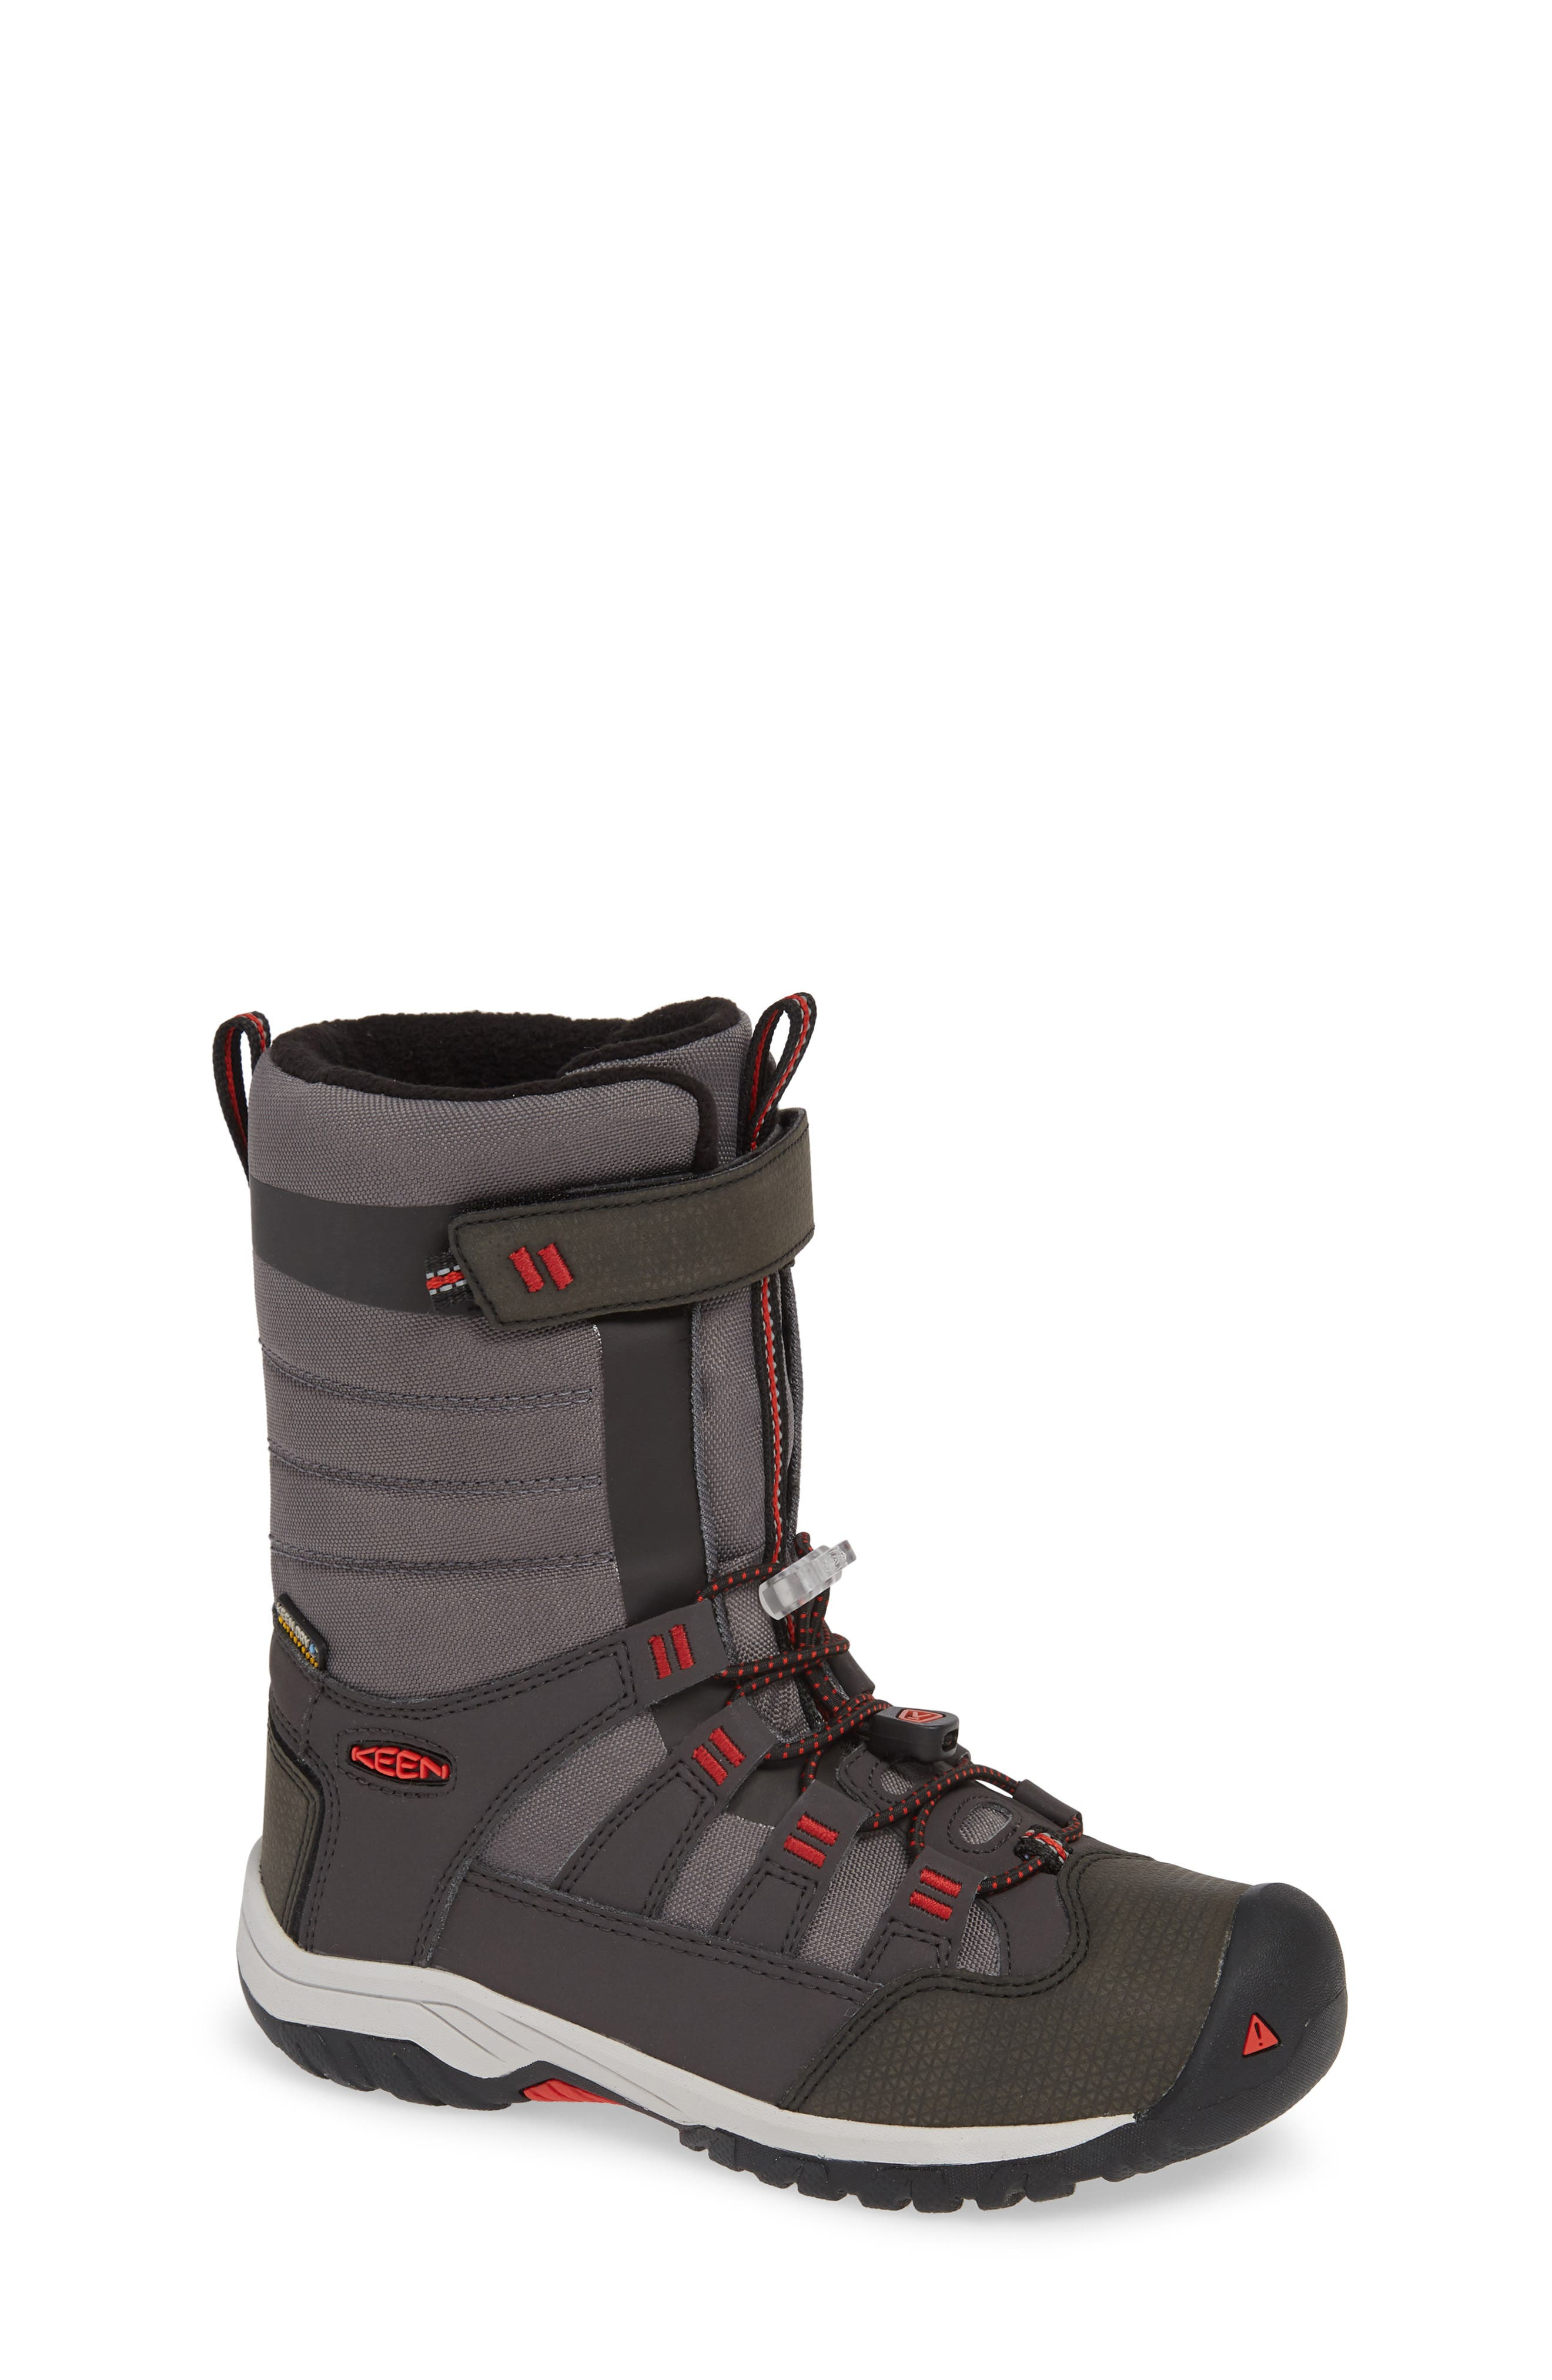 Winterport Neo Waterproof Insulated Boot,                             Main thumbnail 1, color,                             MAGNET/ FIREY RED